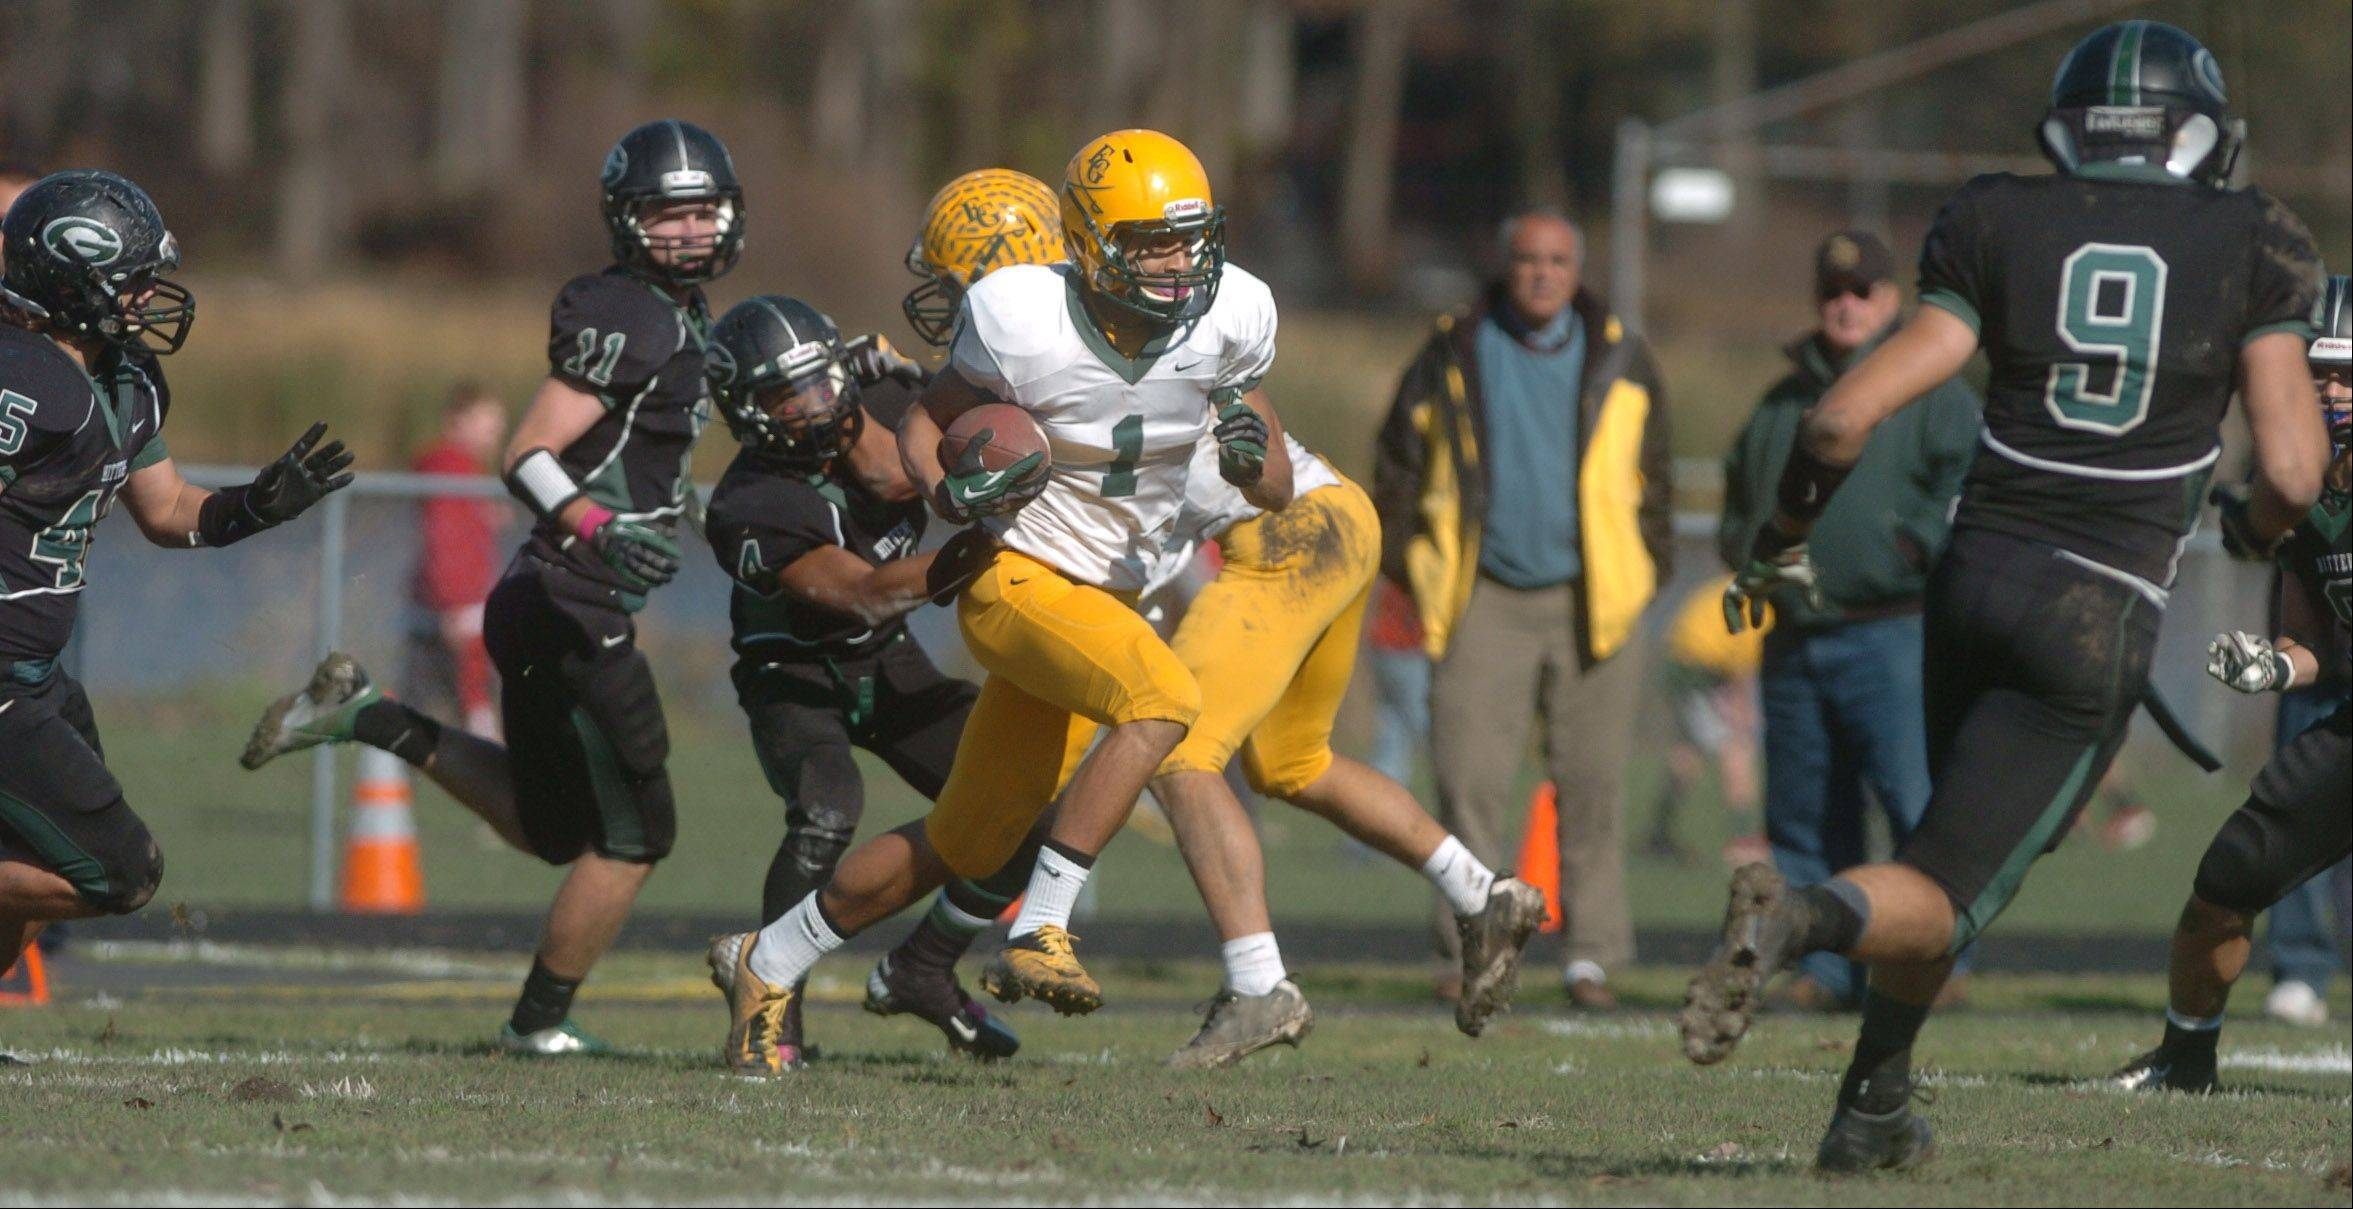 John Pass of Elk Grove moves the ball during the Elk Grove at Glenbard West football game Saturday.